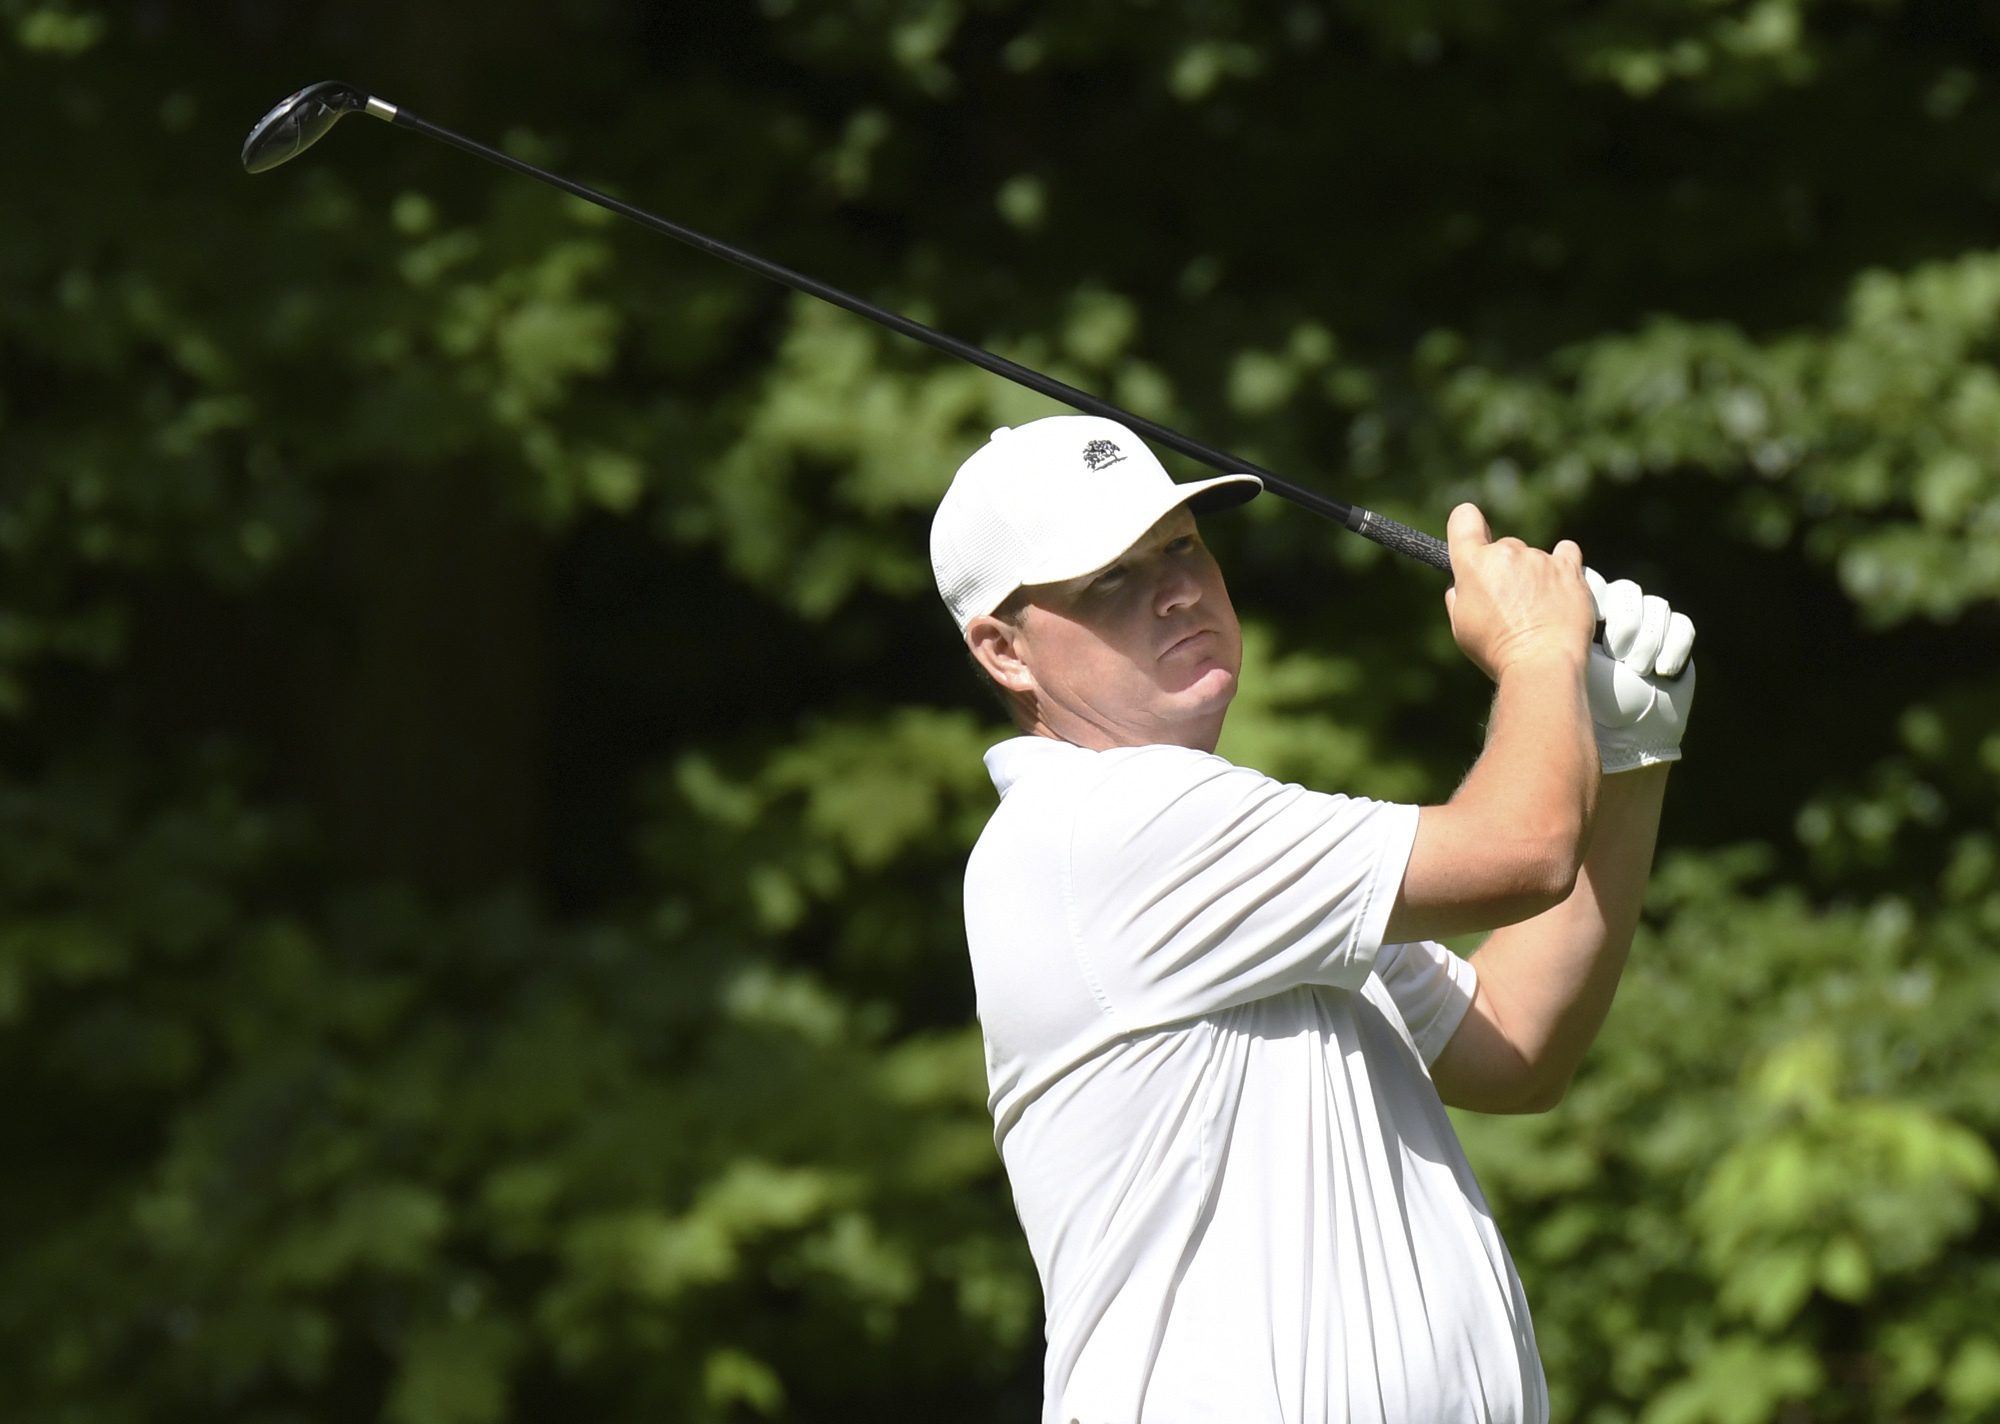 Chad Campbell tees off on the 17th hole during the second round of the John Deere Classic golf tournament Friday, July 14, 2017, in Silvis, Ill. (Todd Mizener/QCOnline.com via AP)